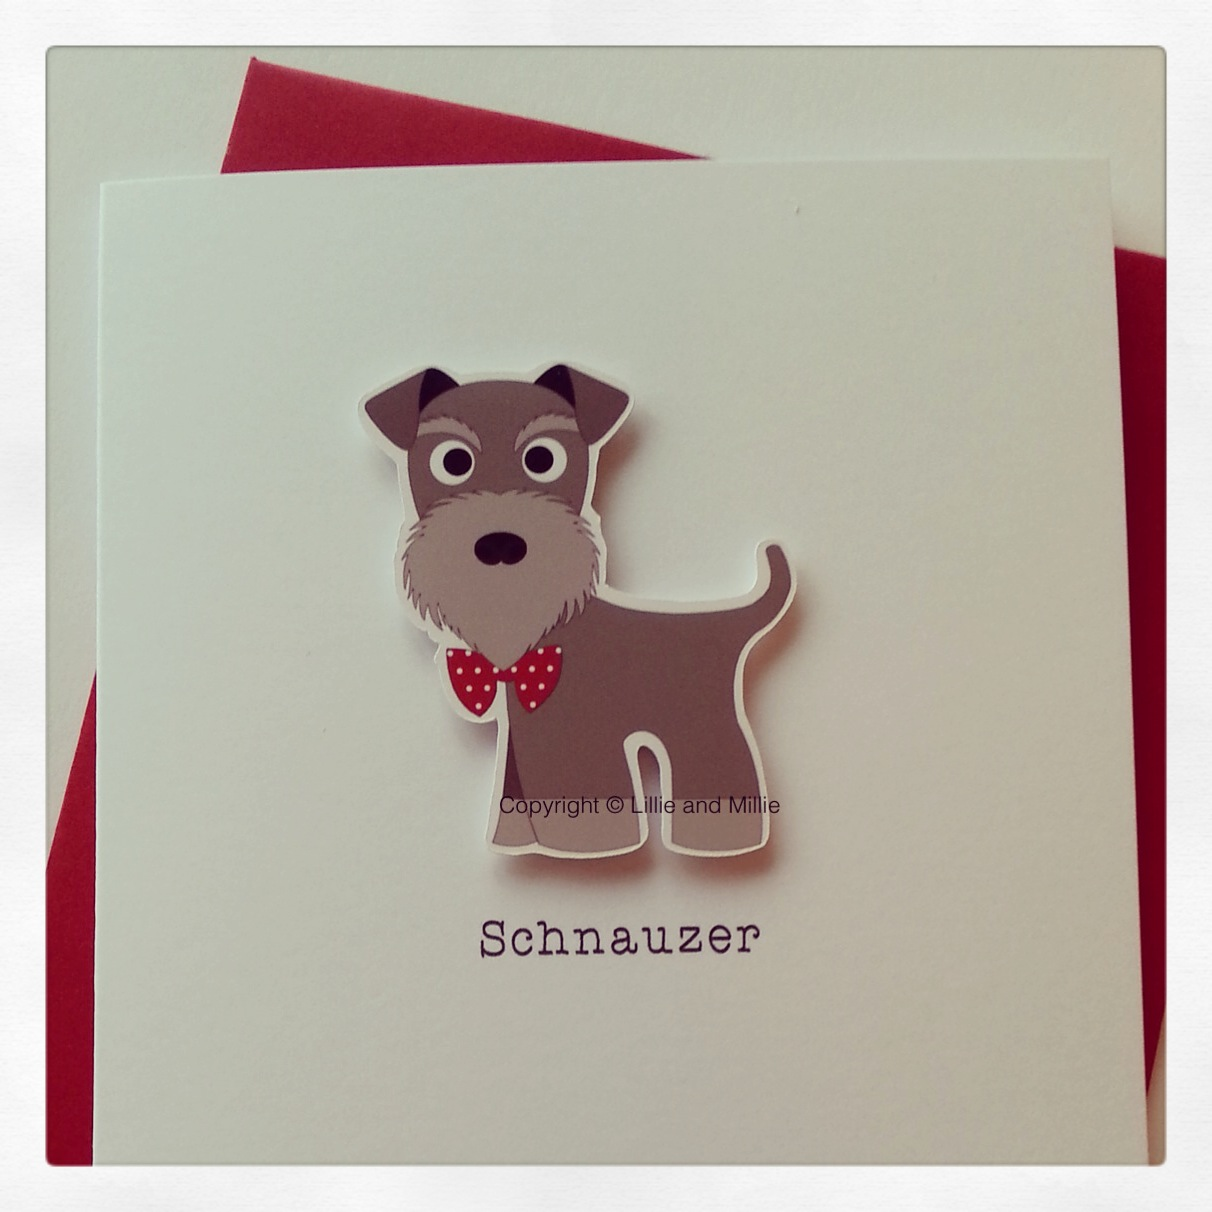 Cute and Cuddly Pepper and Salt Schnauzer Card